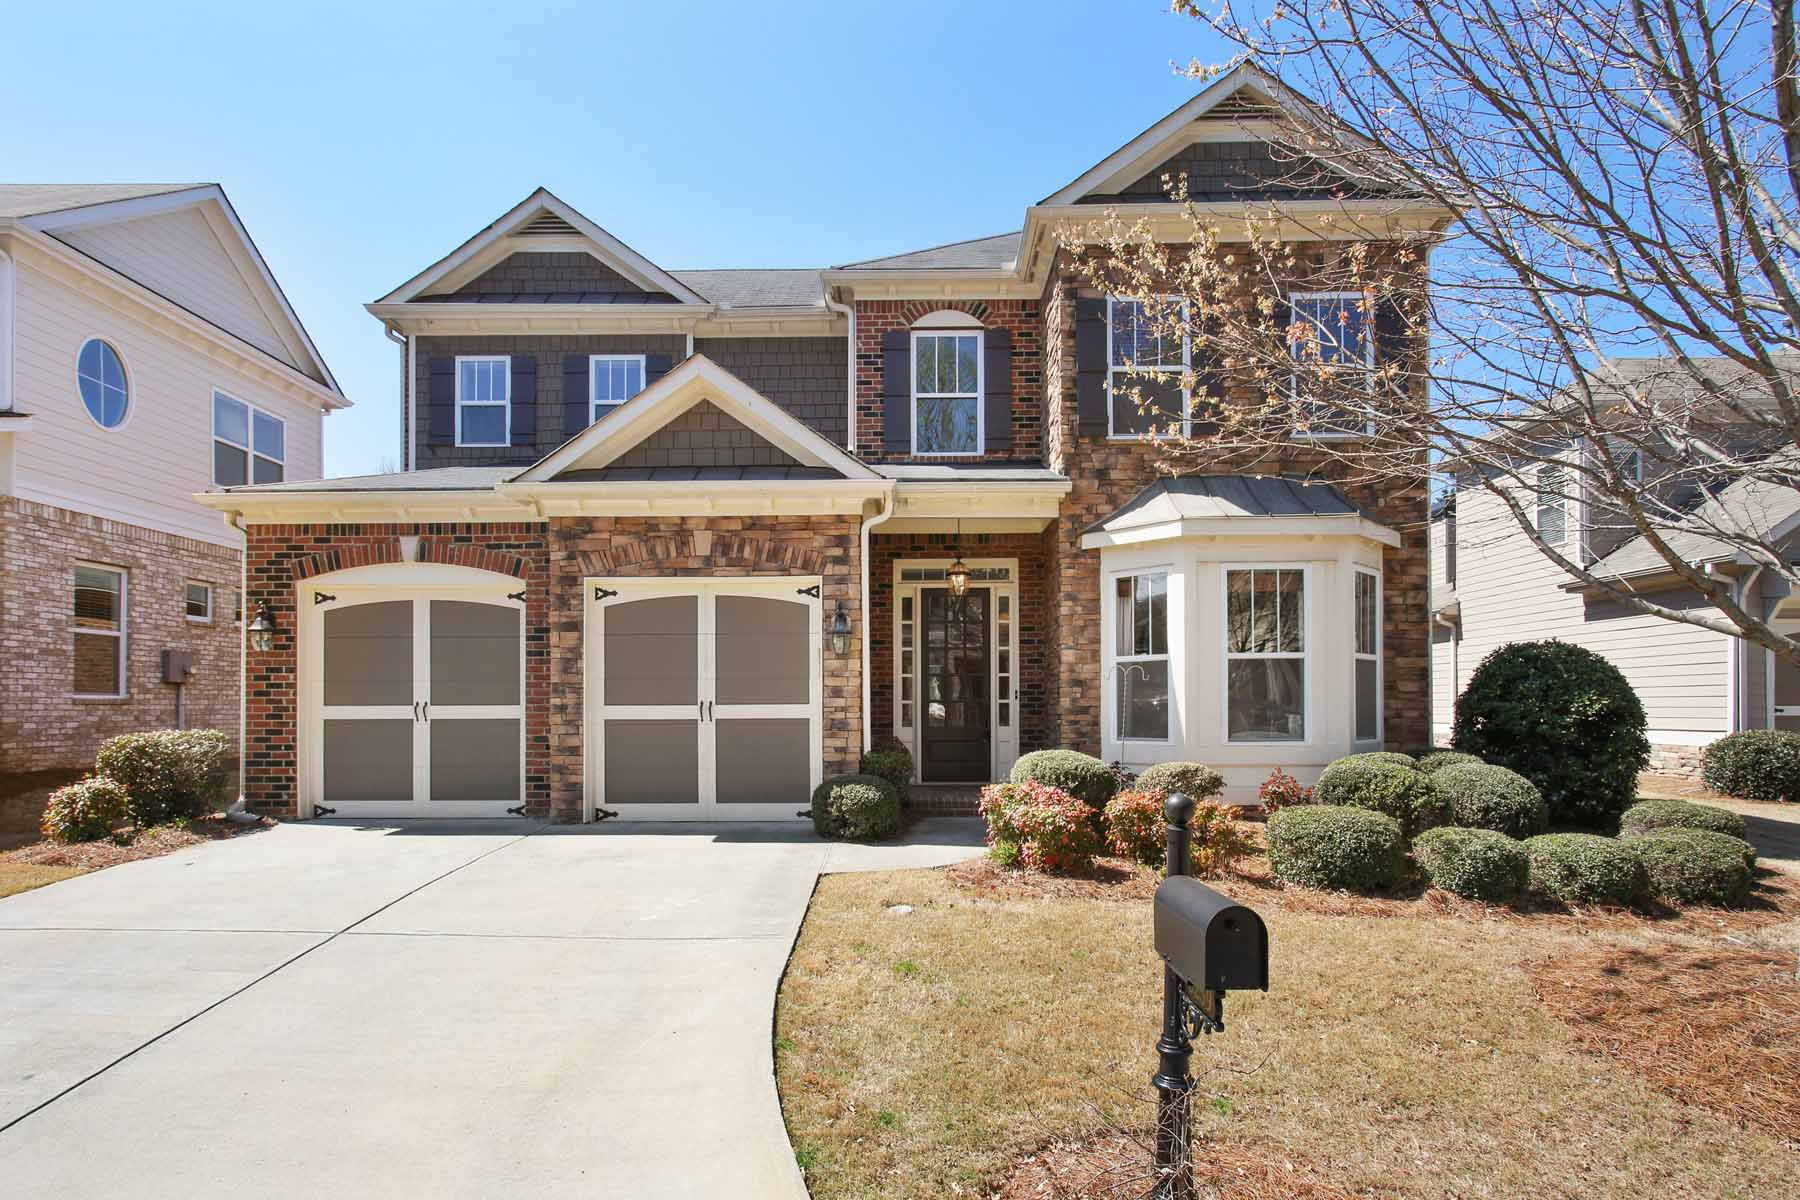 Casa Unifamiliar por un Venta en Stunning Home in Crooked Creek! 3259 Kentworth Lane Alpharetta, Georgia, 30004 Estados Unidos